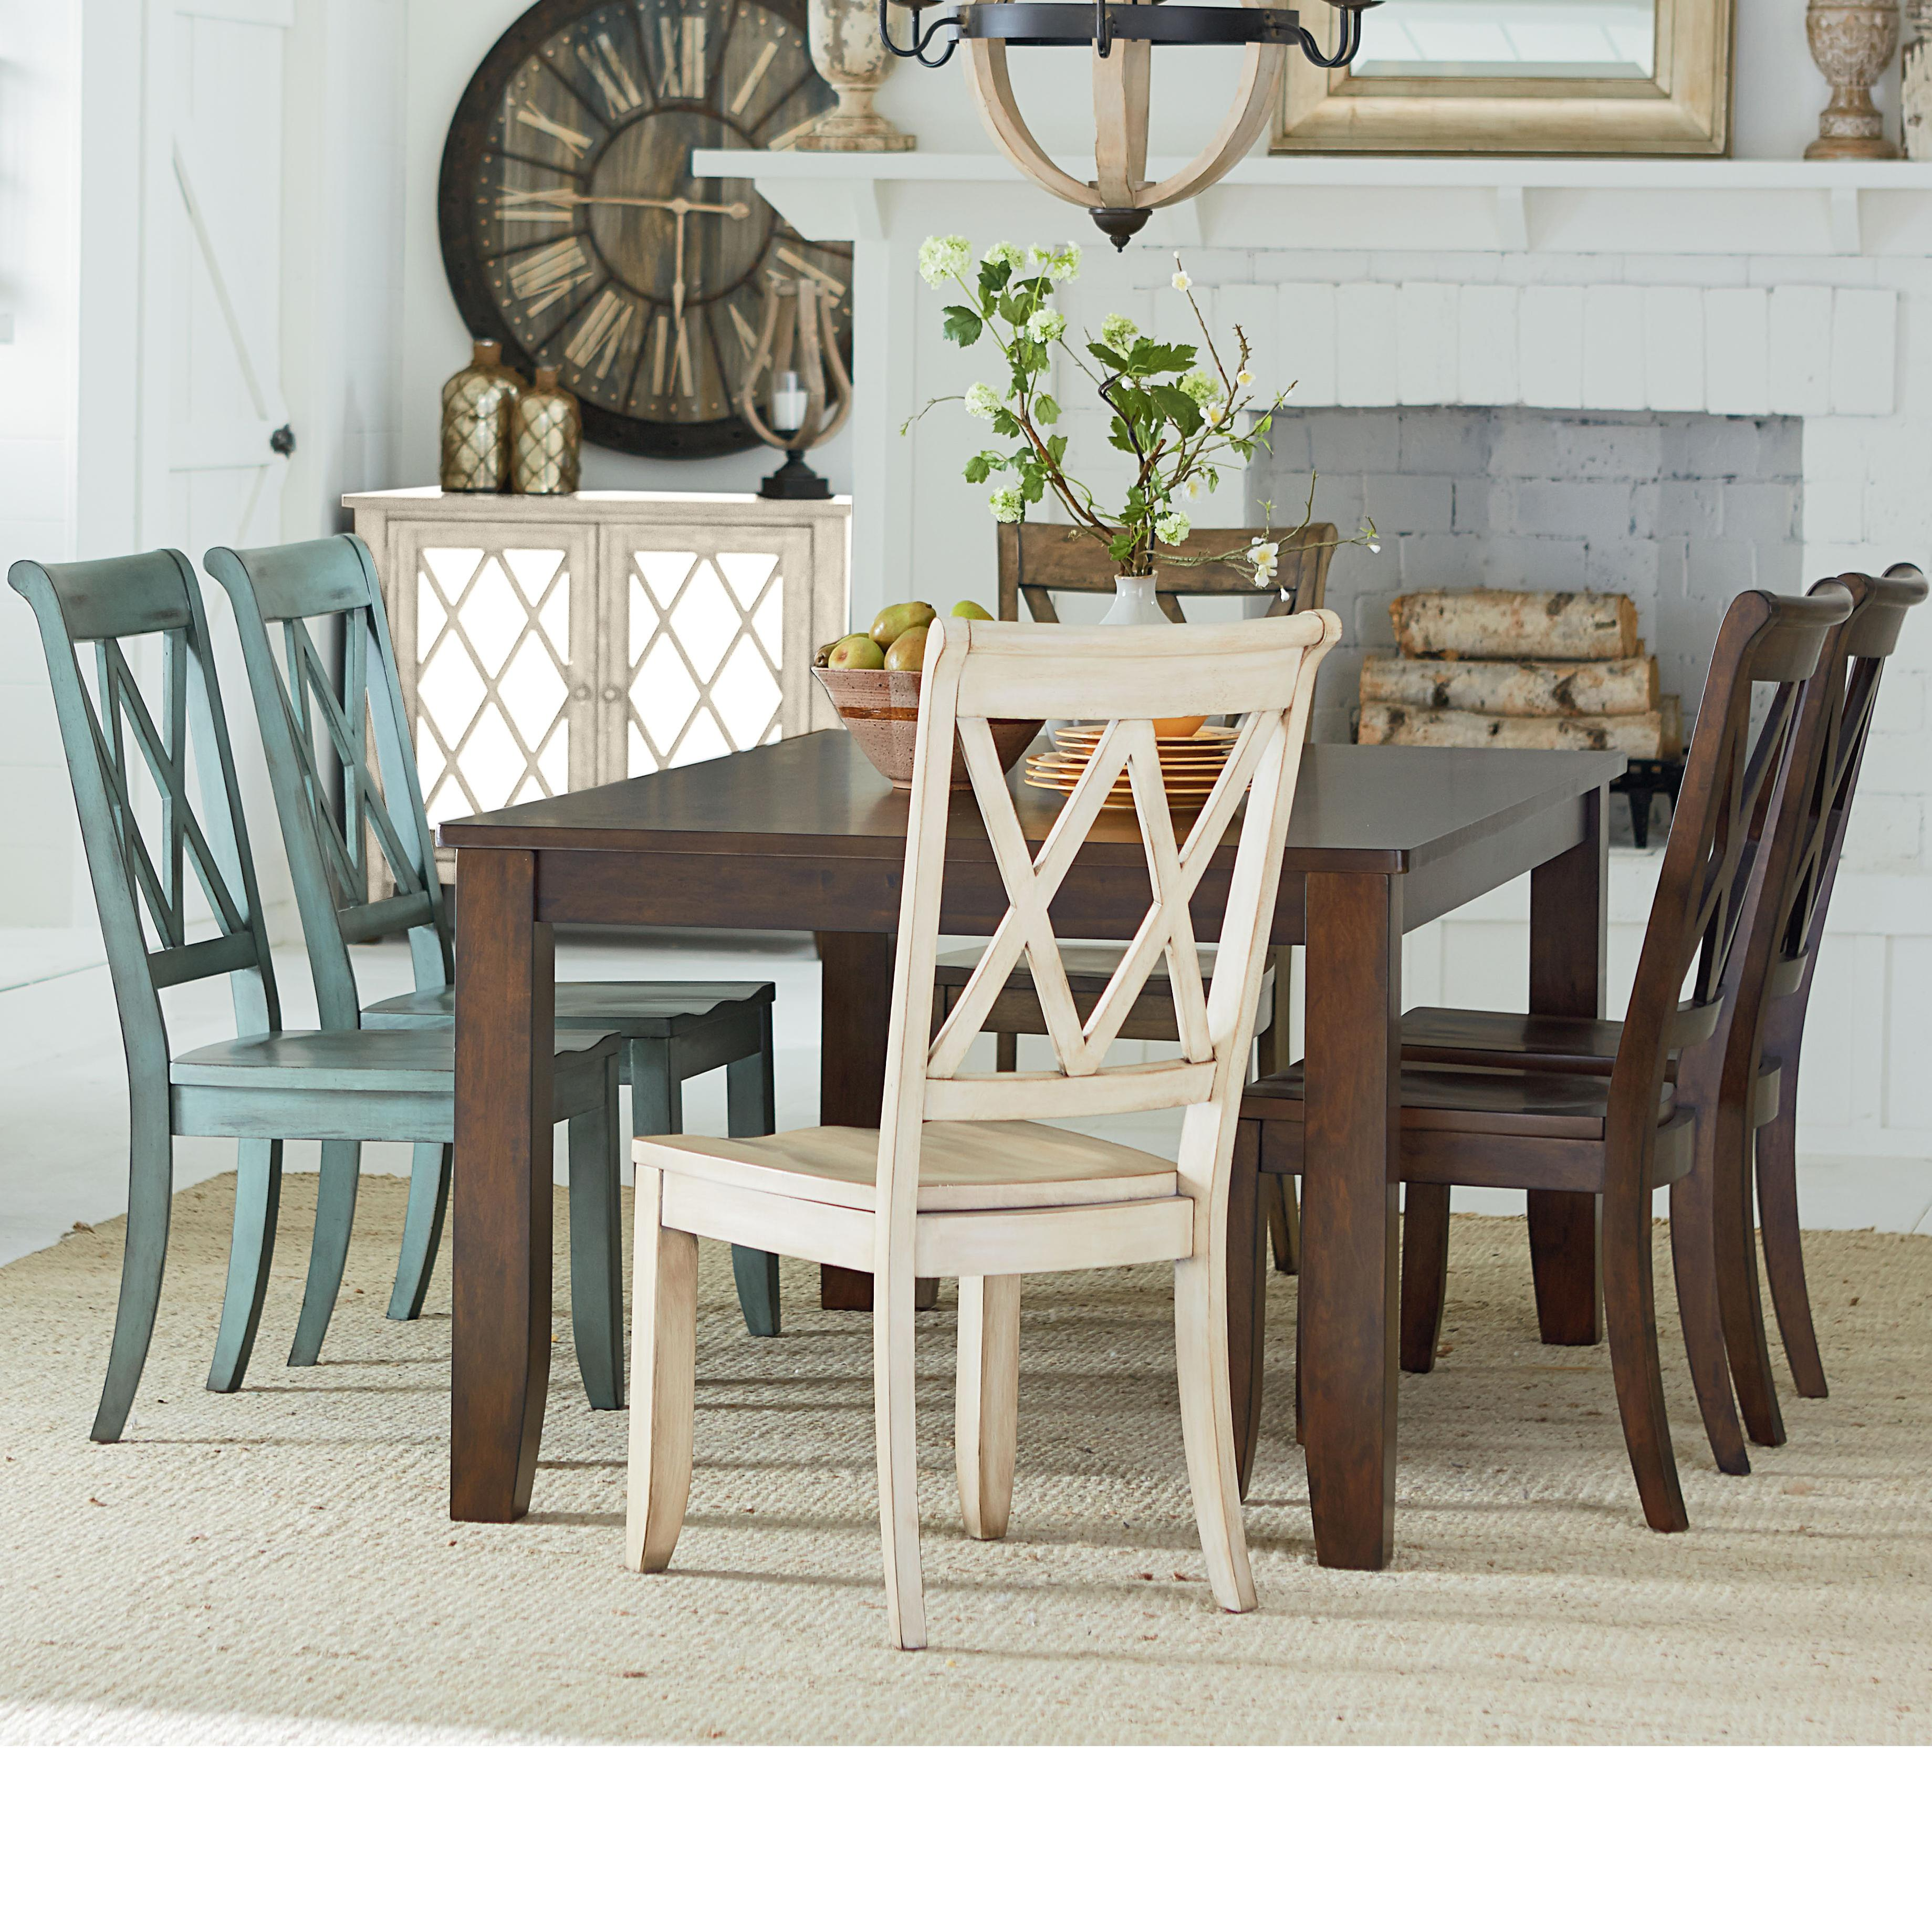 Standard Furniture Vintage Table and Chair Set - Item Number 11301+2x11311+2x13315 & Standard Furniture Vintage Table and 6 Chair Set | Household ...